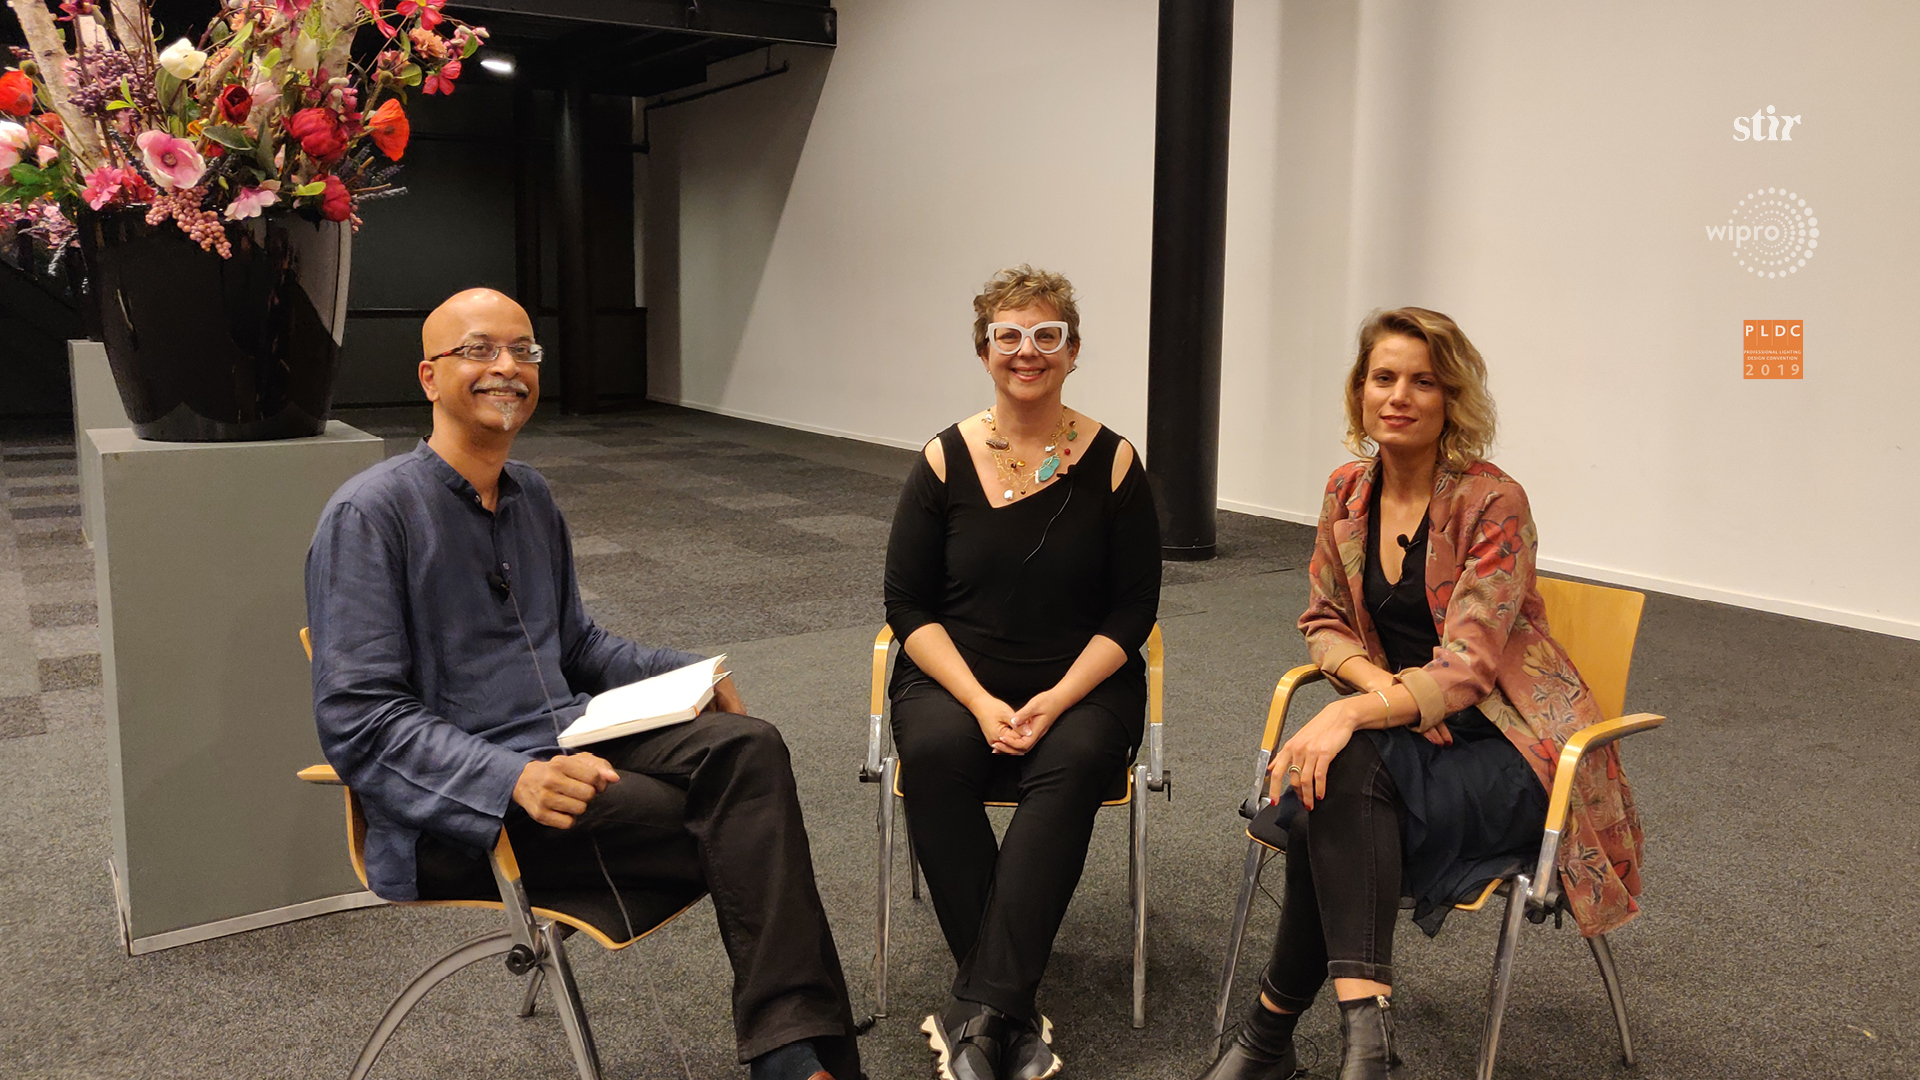 (L-R) Linus Lopez in conversation with artist and sculptor Janet Echelman and light artist Amanda Szabo, for Spread the Light  | Janet Echelman | Amanda Szabo| PLDC 2019| Spread the Light | STIRworld